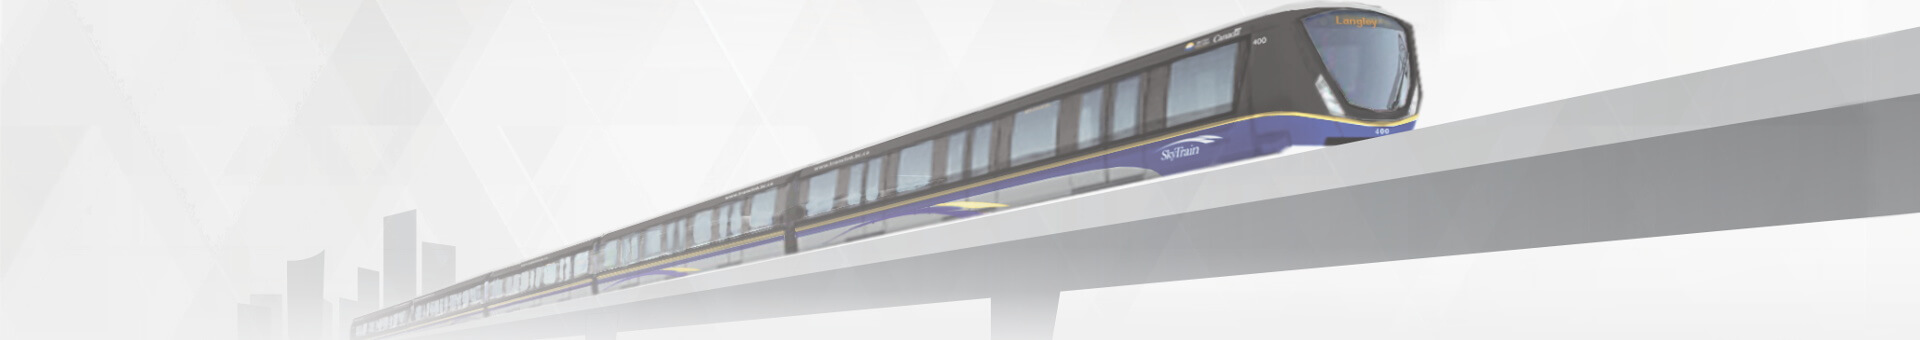 SkyTrain is the right choice for Surrey and Langley